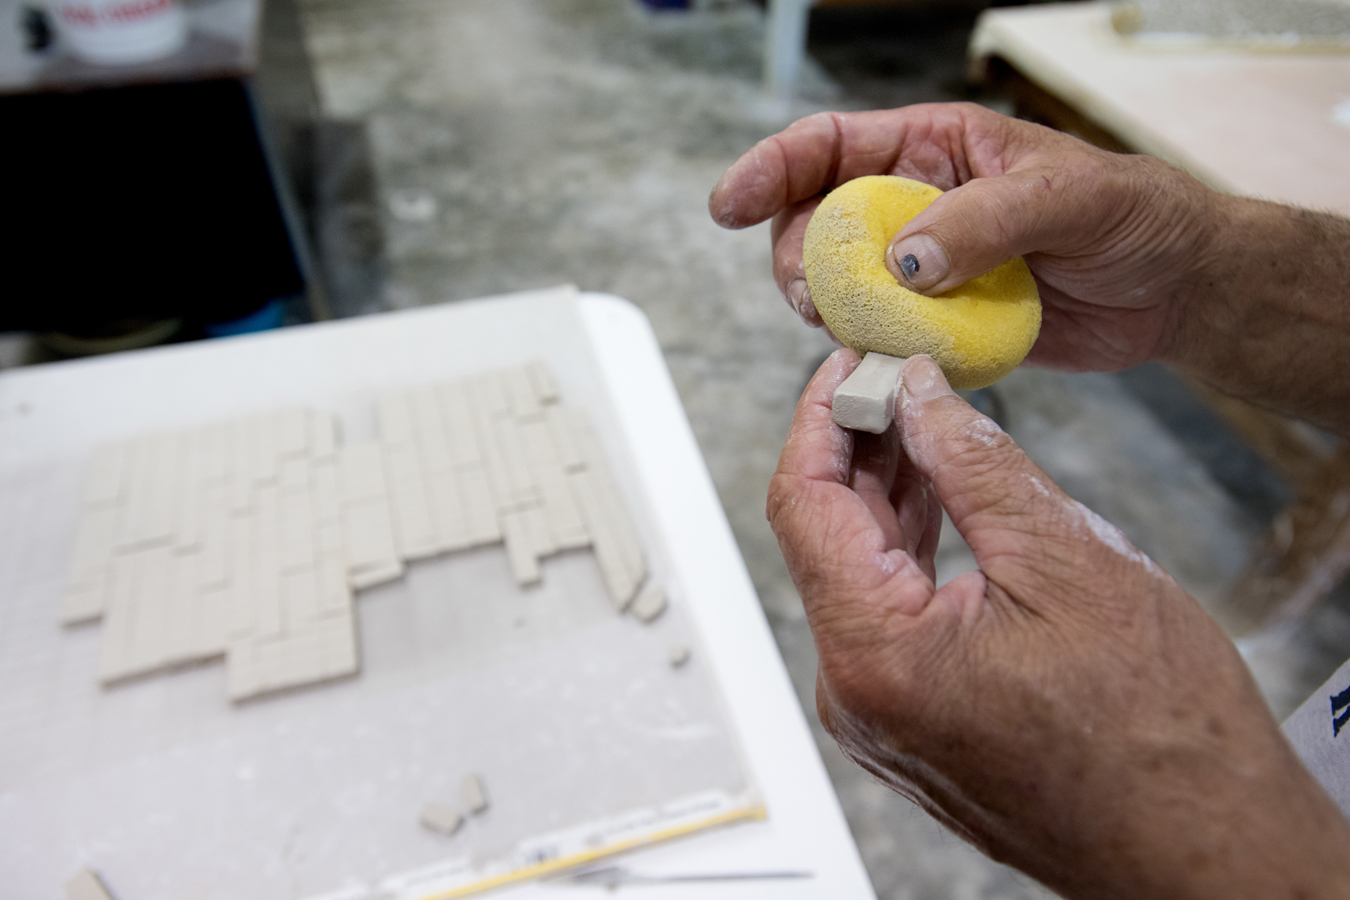 Unfired tiles being sponged prior to firing to soften and round the edges.  Photo by Michael Spooneybarger